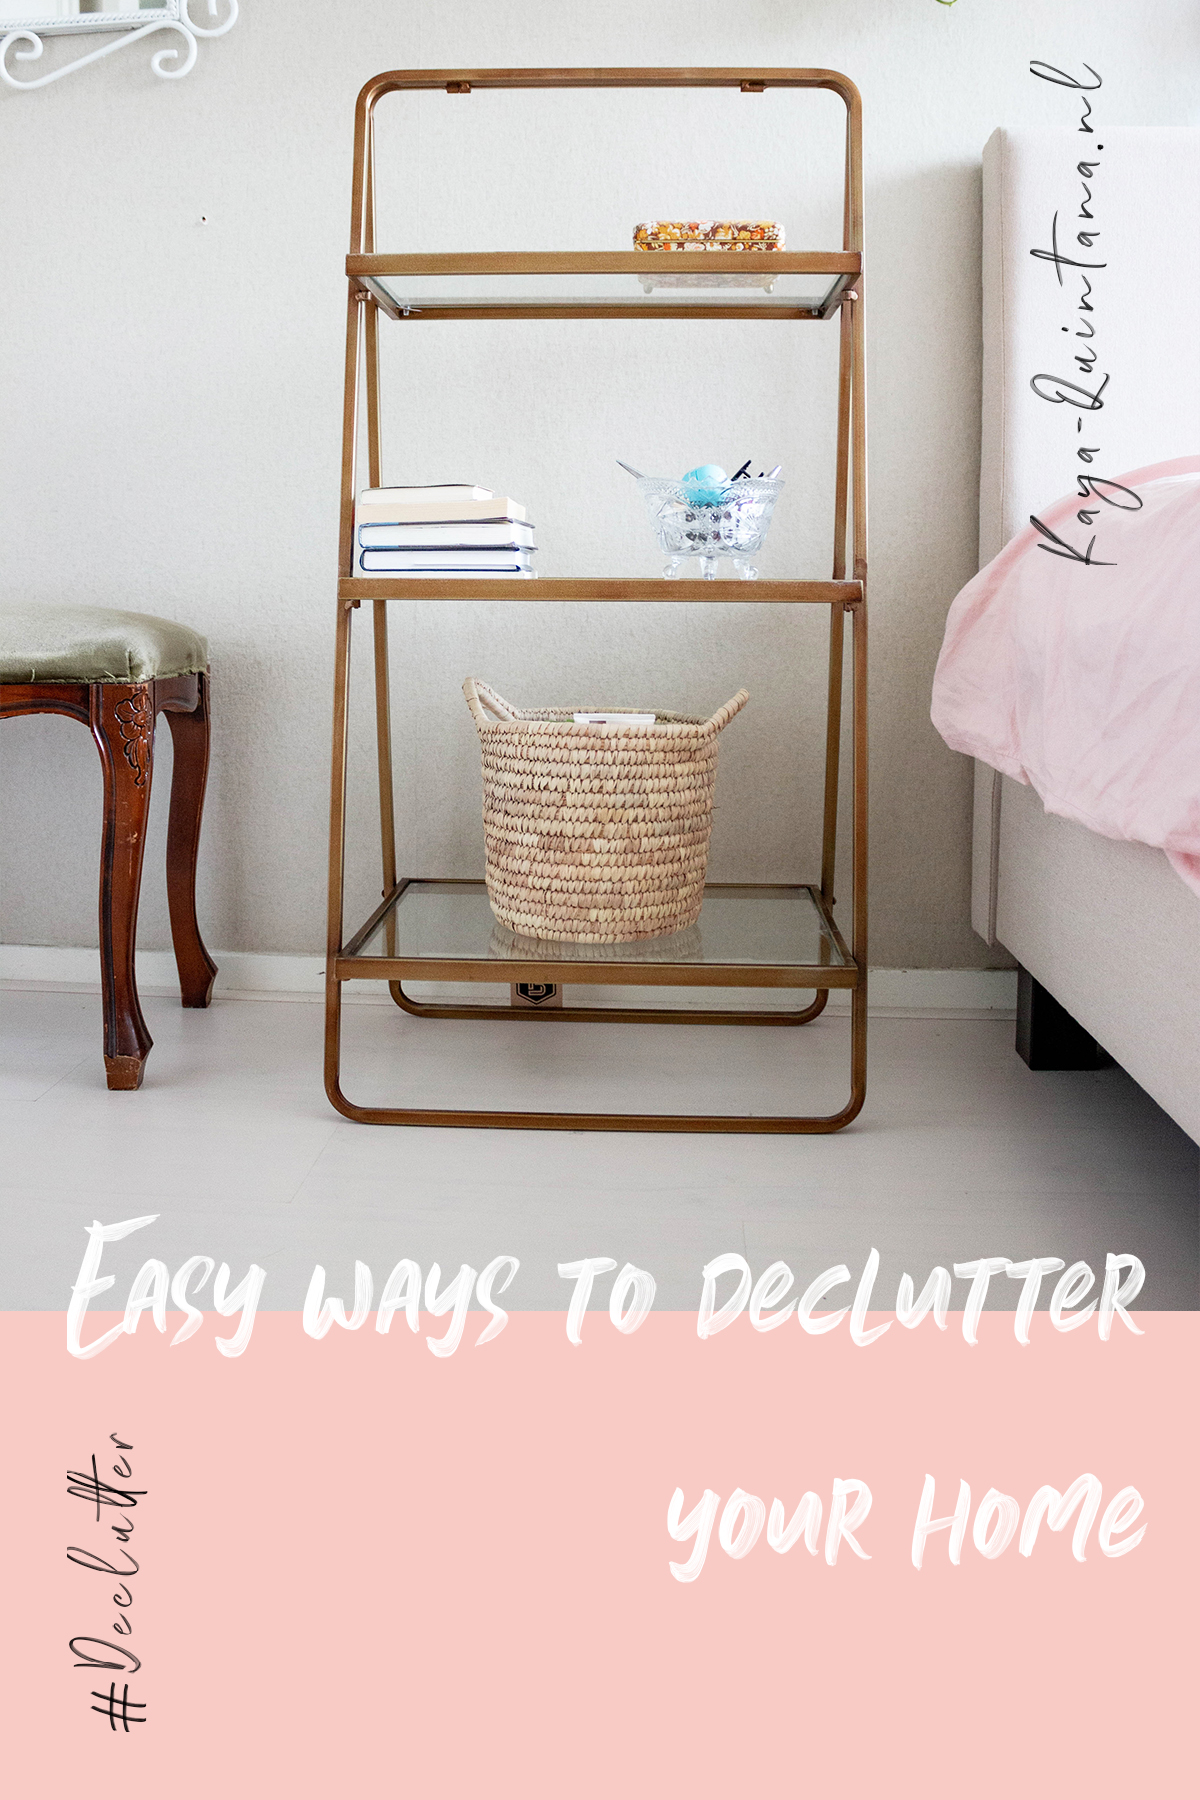 four easy ways to declutter your home